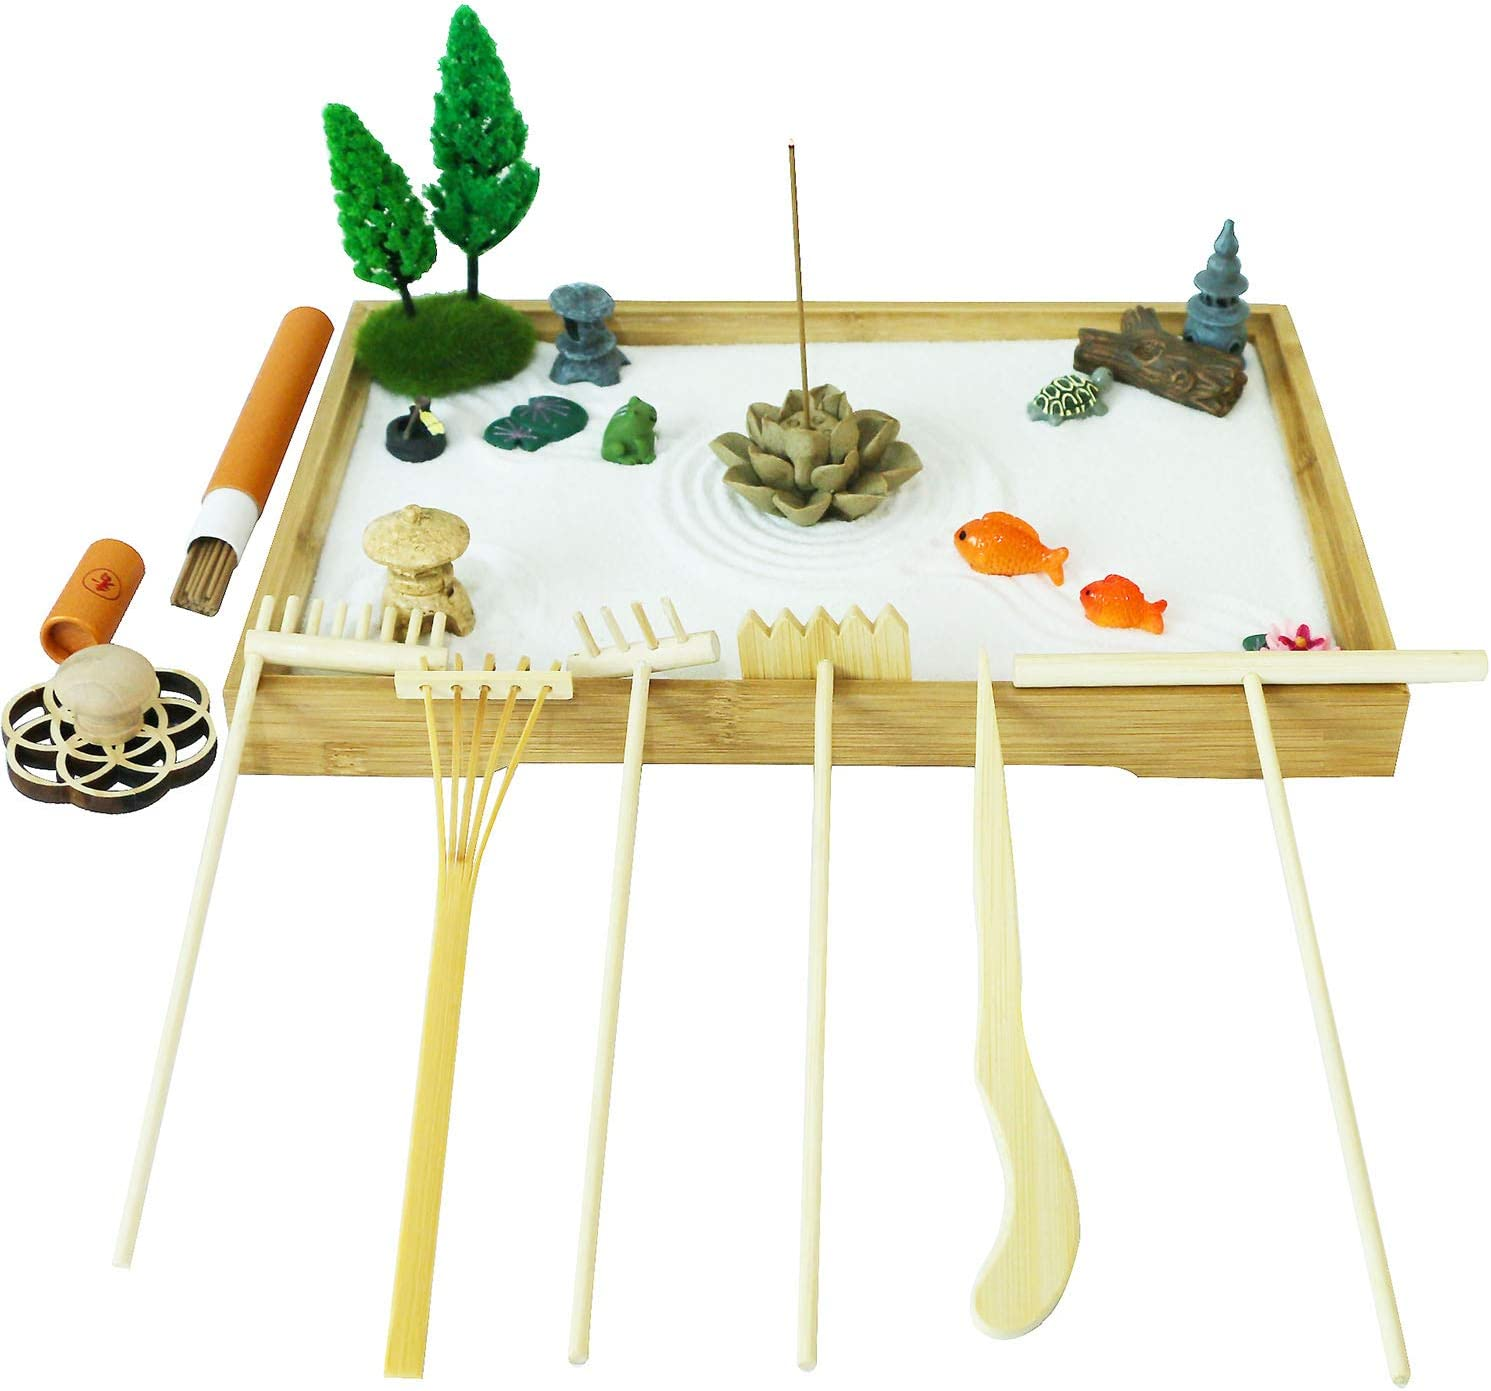 Tabletop Meditation Zen Garden Gifts – Japanese Calming Miniature Desktop Rock Sand Set Decor Indoor Office Relaxation Sandbox Kits Tools Accessories Bamboo Tray Stamp Rake Pagoda Bonsai Tree Plant